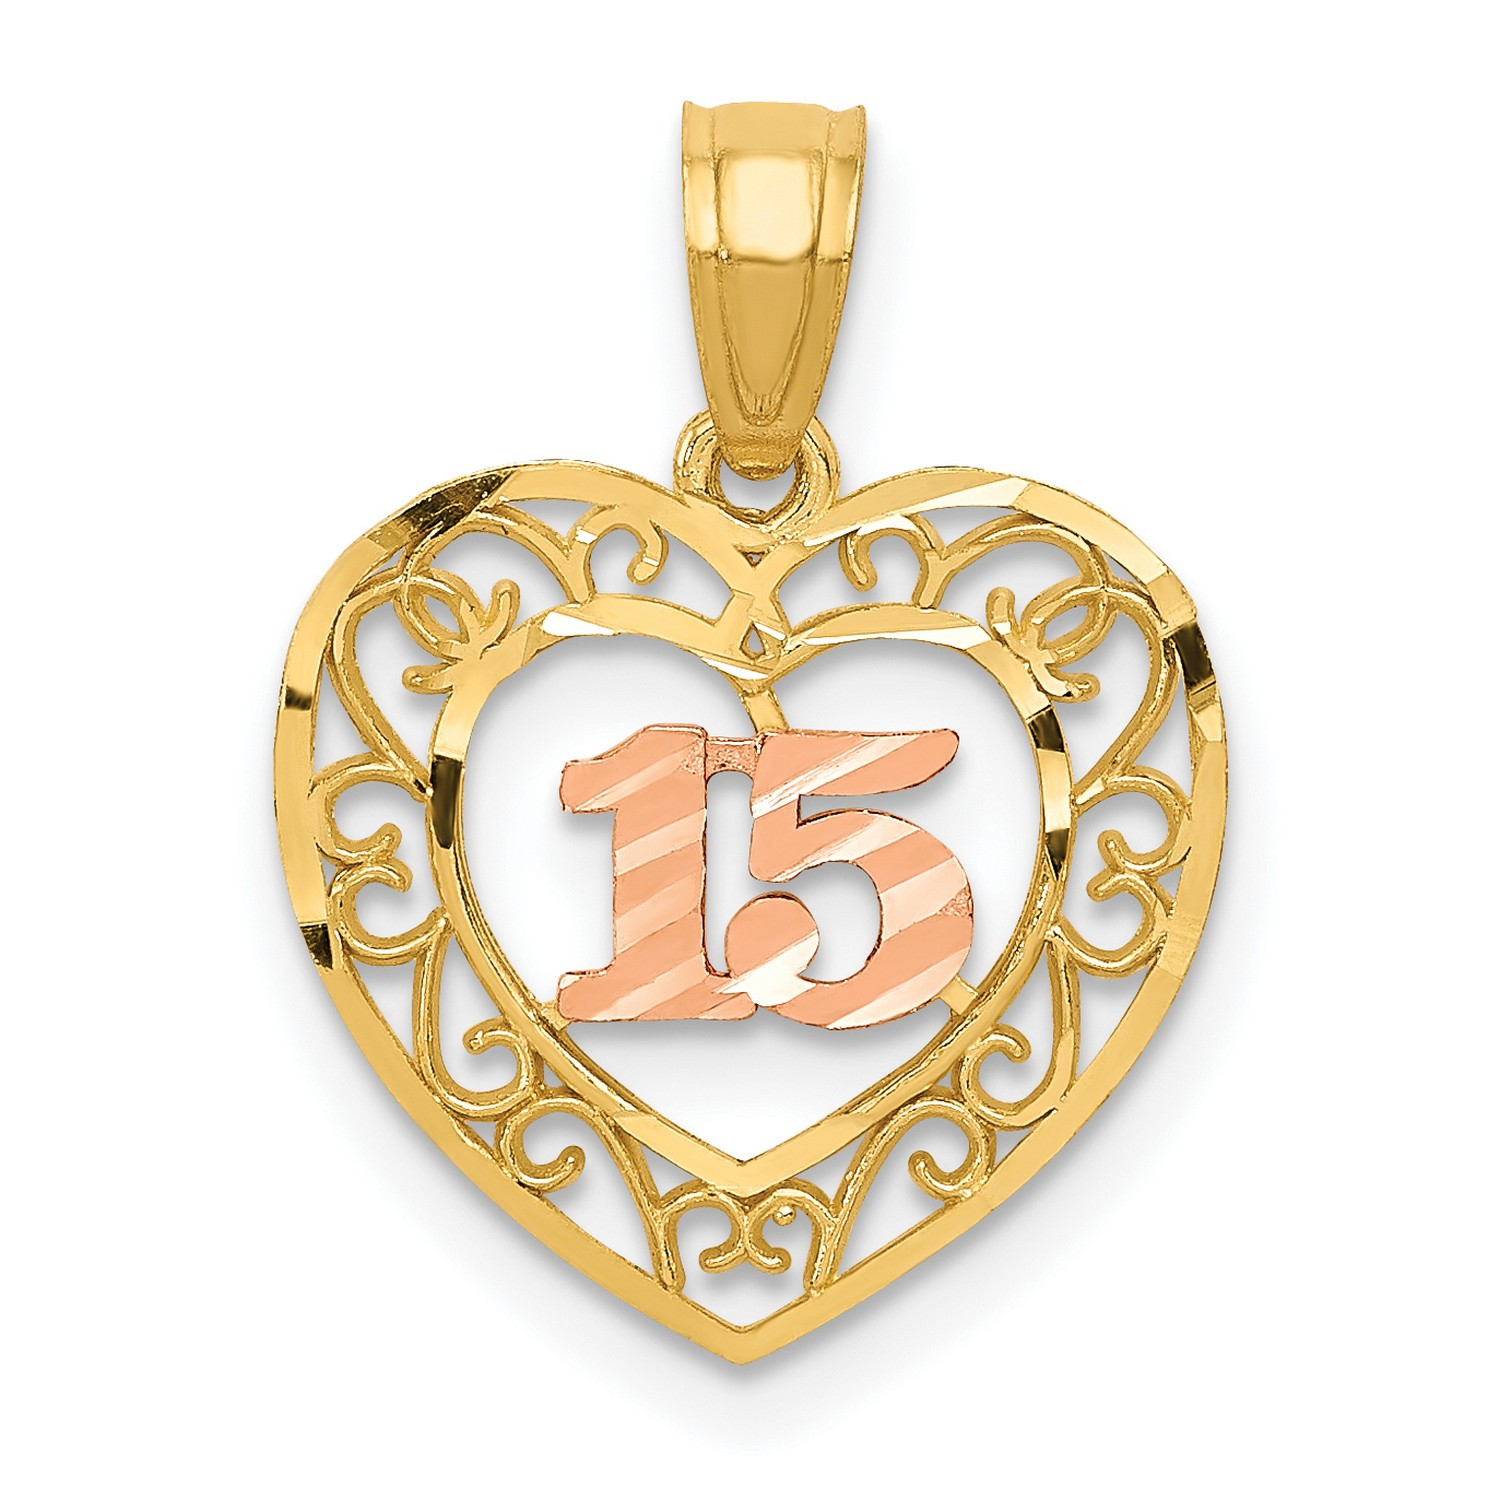 14k Yellow Gold and Rose Gold Heart Lock /& Key Pendant 21x15mm 0.78gr